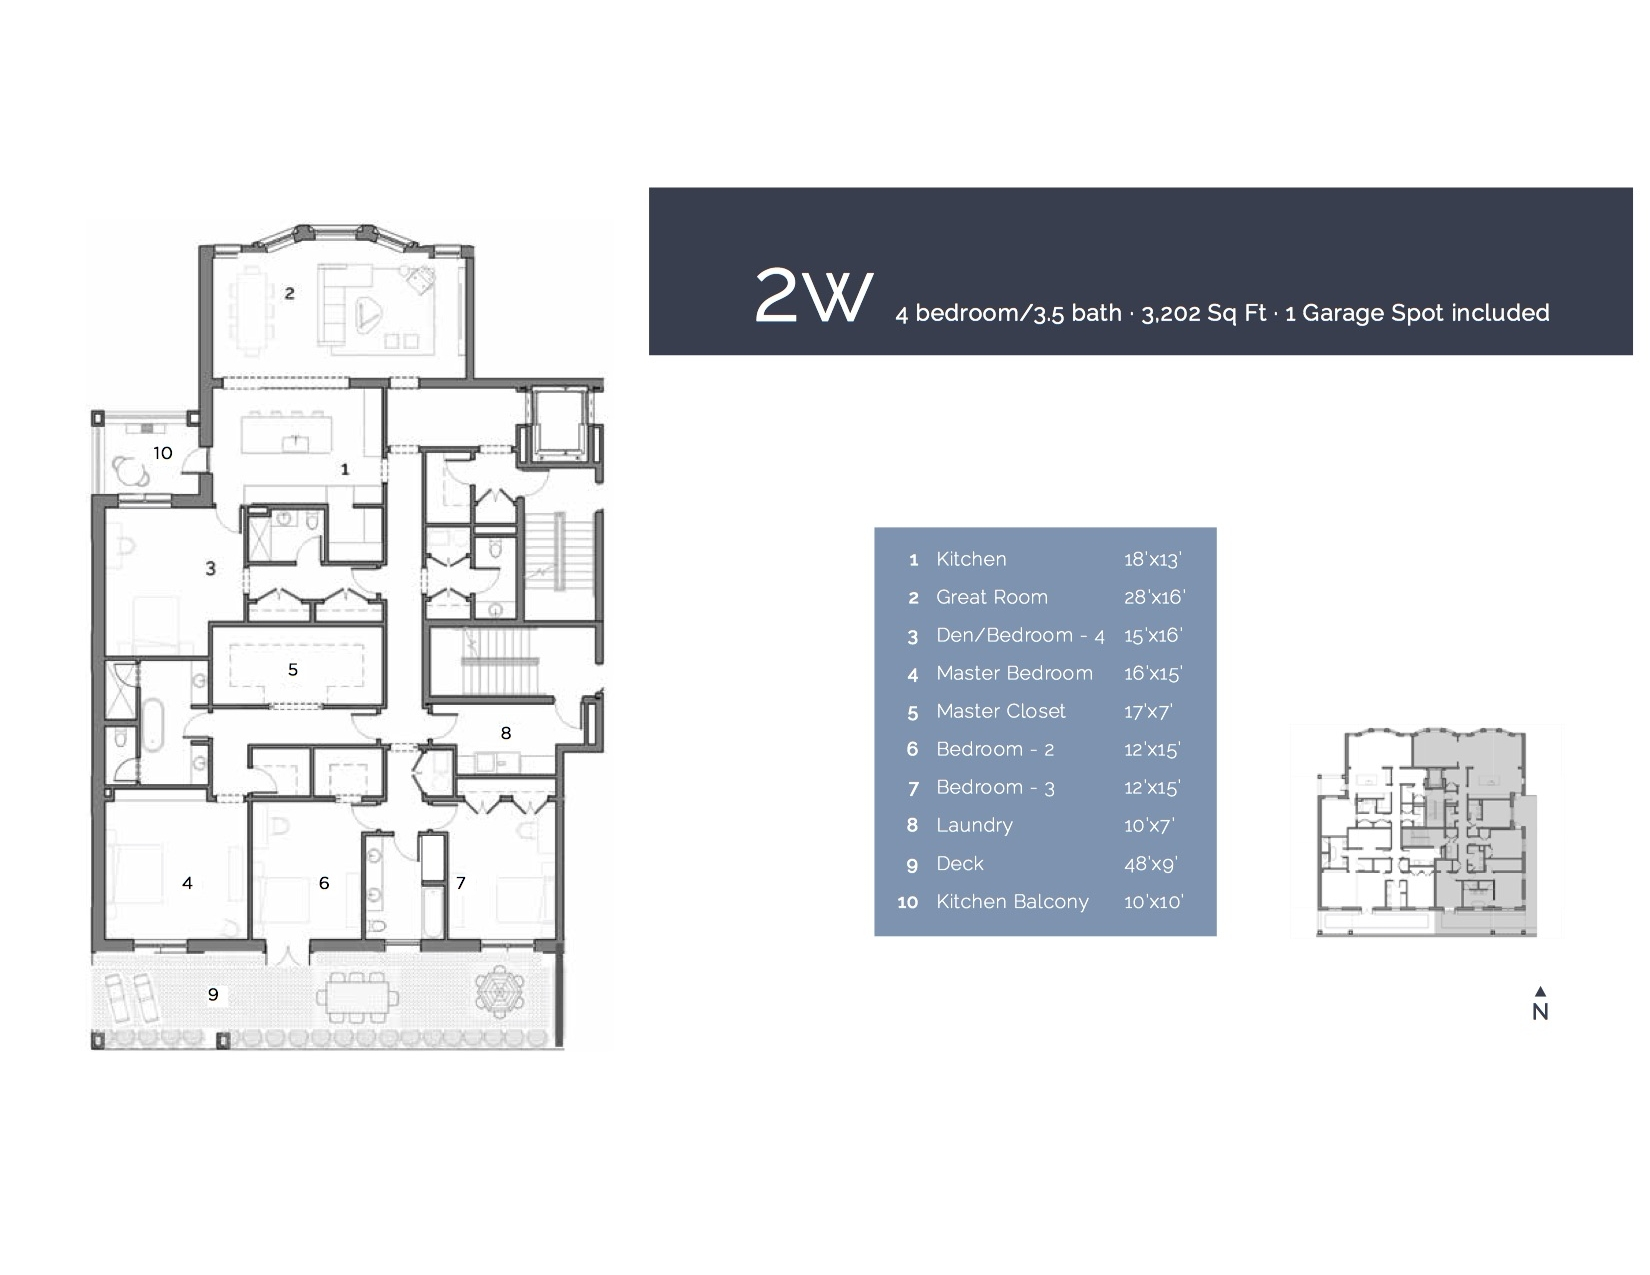 2W  - 4 bedroom/3.5 bathroom, 3202 sf